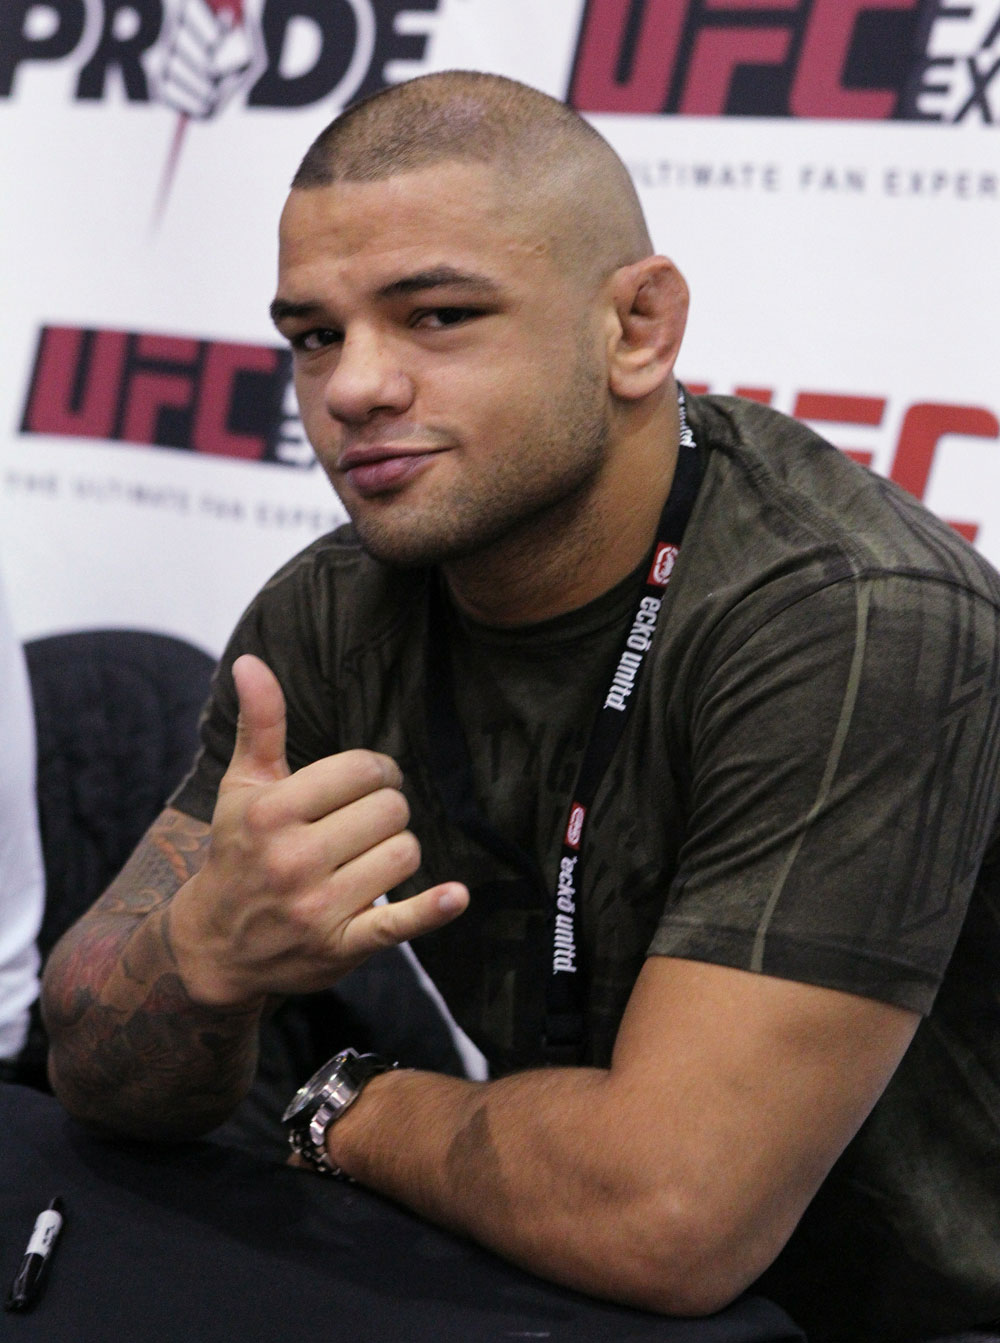 UFC Welterweight fighter Thiago Alves at the UFC Fan Expo London at Earl's Court Arena